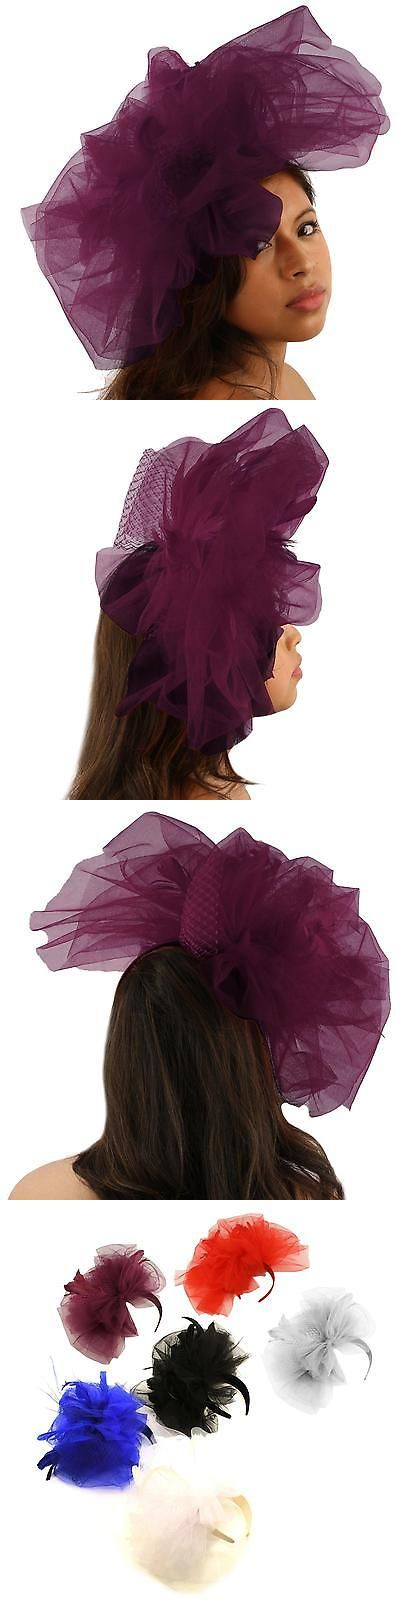 3597384b62bb6 Fascinators and Headpieces 168998  Big Tulle Mesh Feathers Fishnet Headband  Fascinator Bridal Cocktail Hat Purple -  BUY IT NOW ONLY   13.31 on  eBay  ...